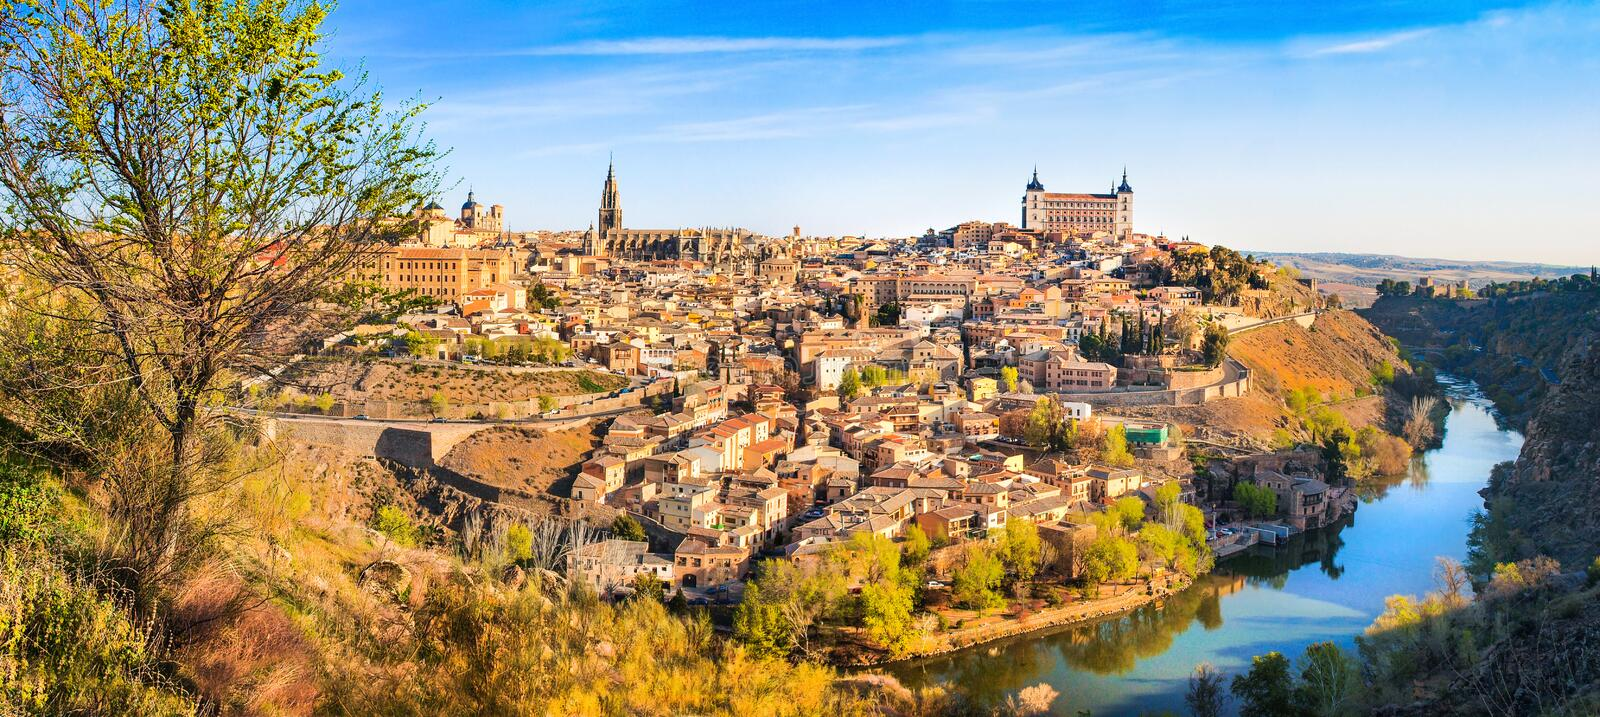 Historic city of Toledo with river Tajo at sunset, Castile-La Mancha, Spain stock images